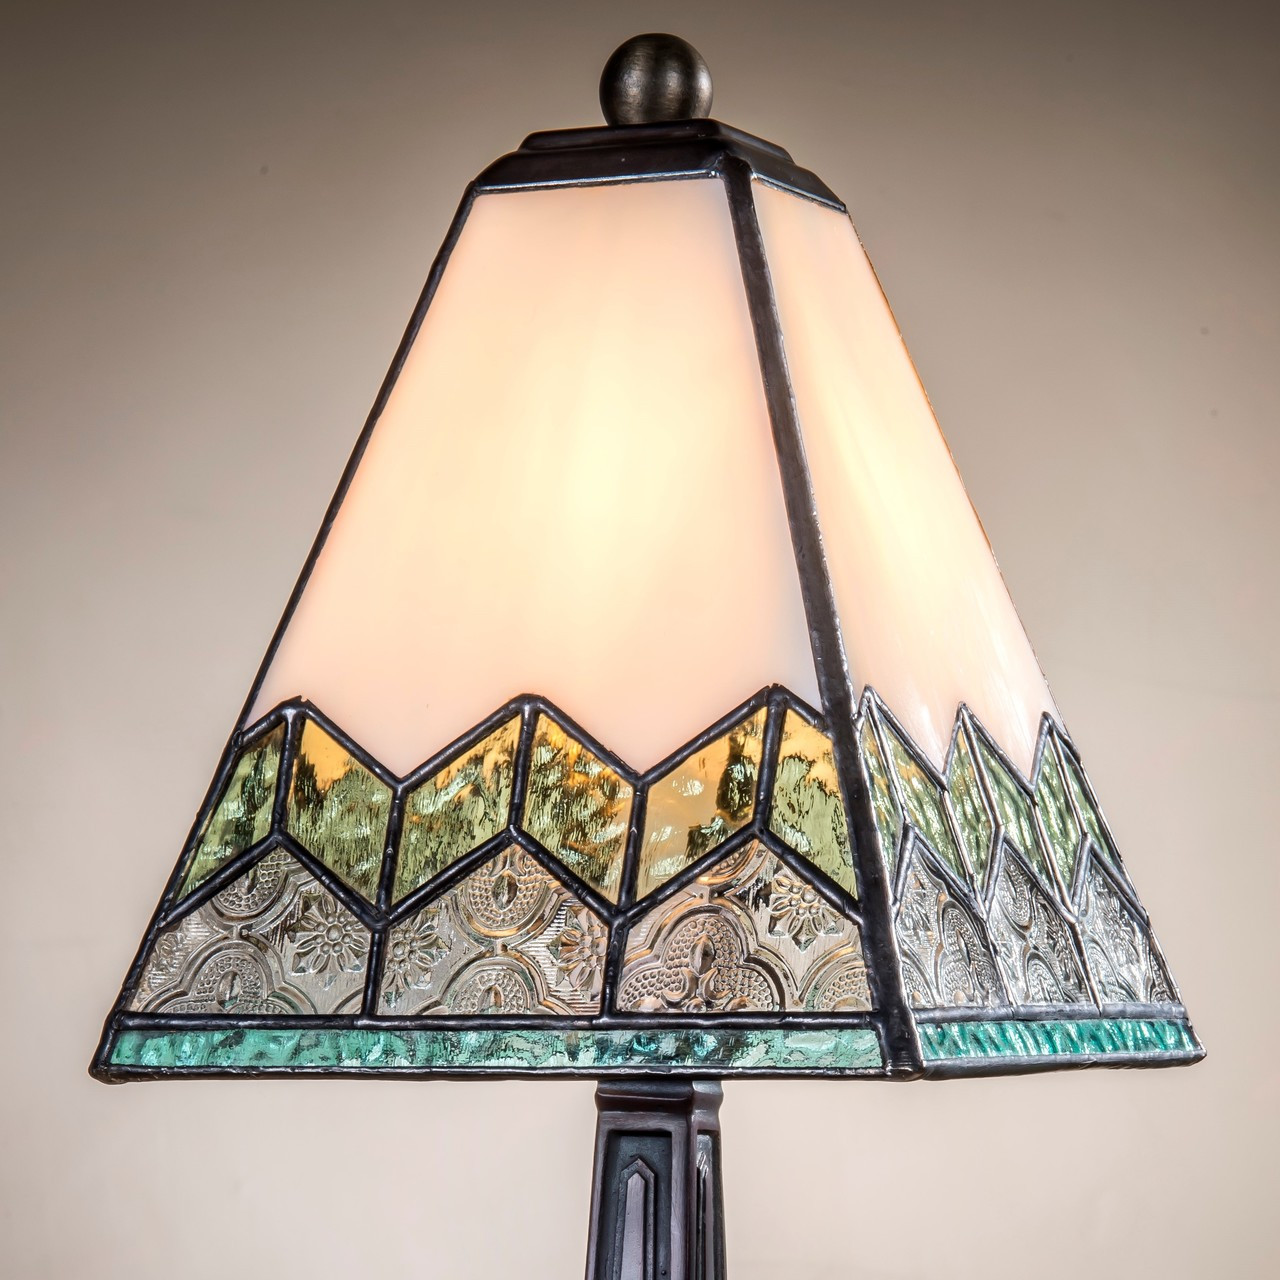 small lamp blue green accent lighting tiffany stained glass mission craftsman home decor bedroom dresser shelf entryway j devlin lam 698 tb